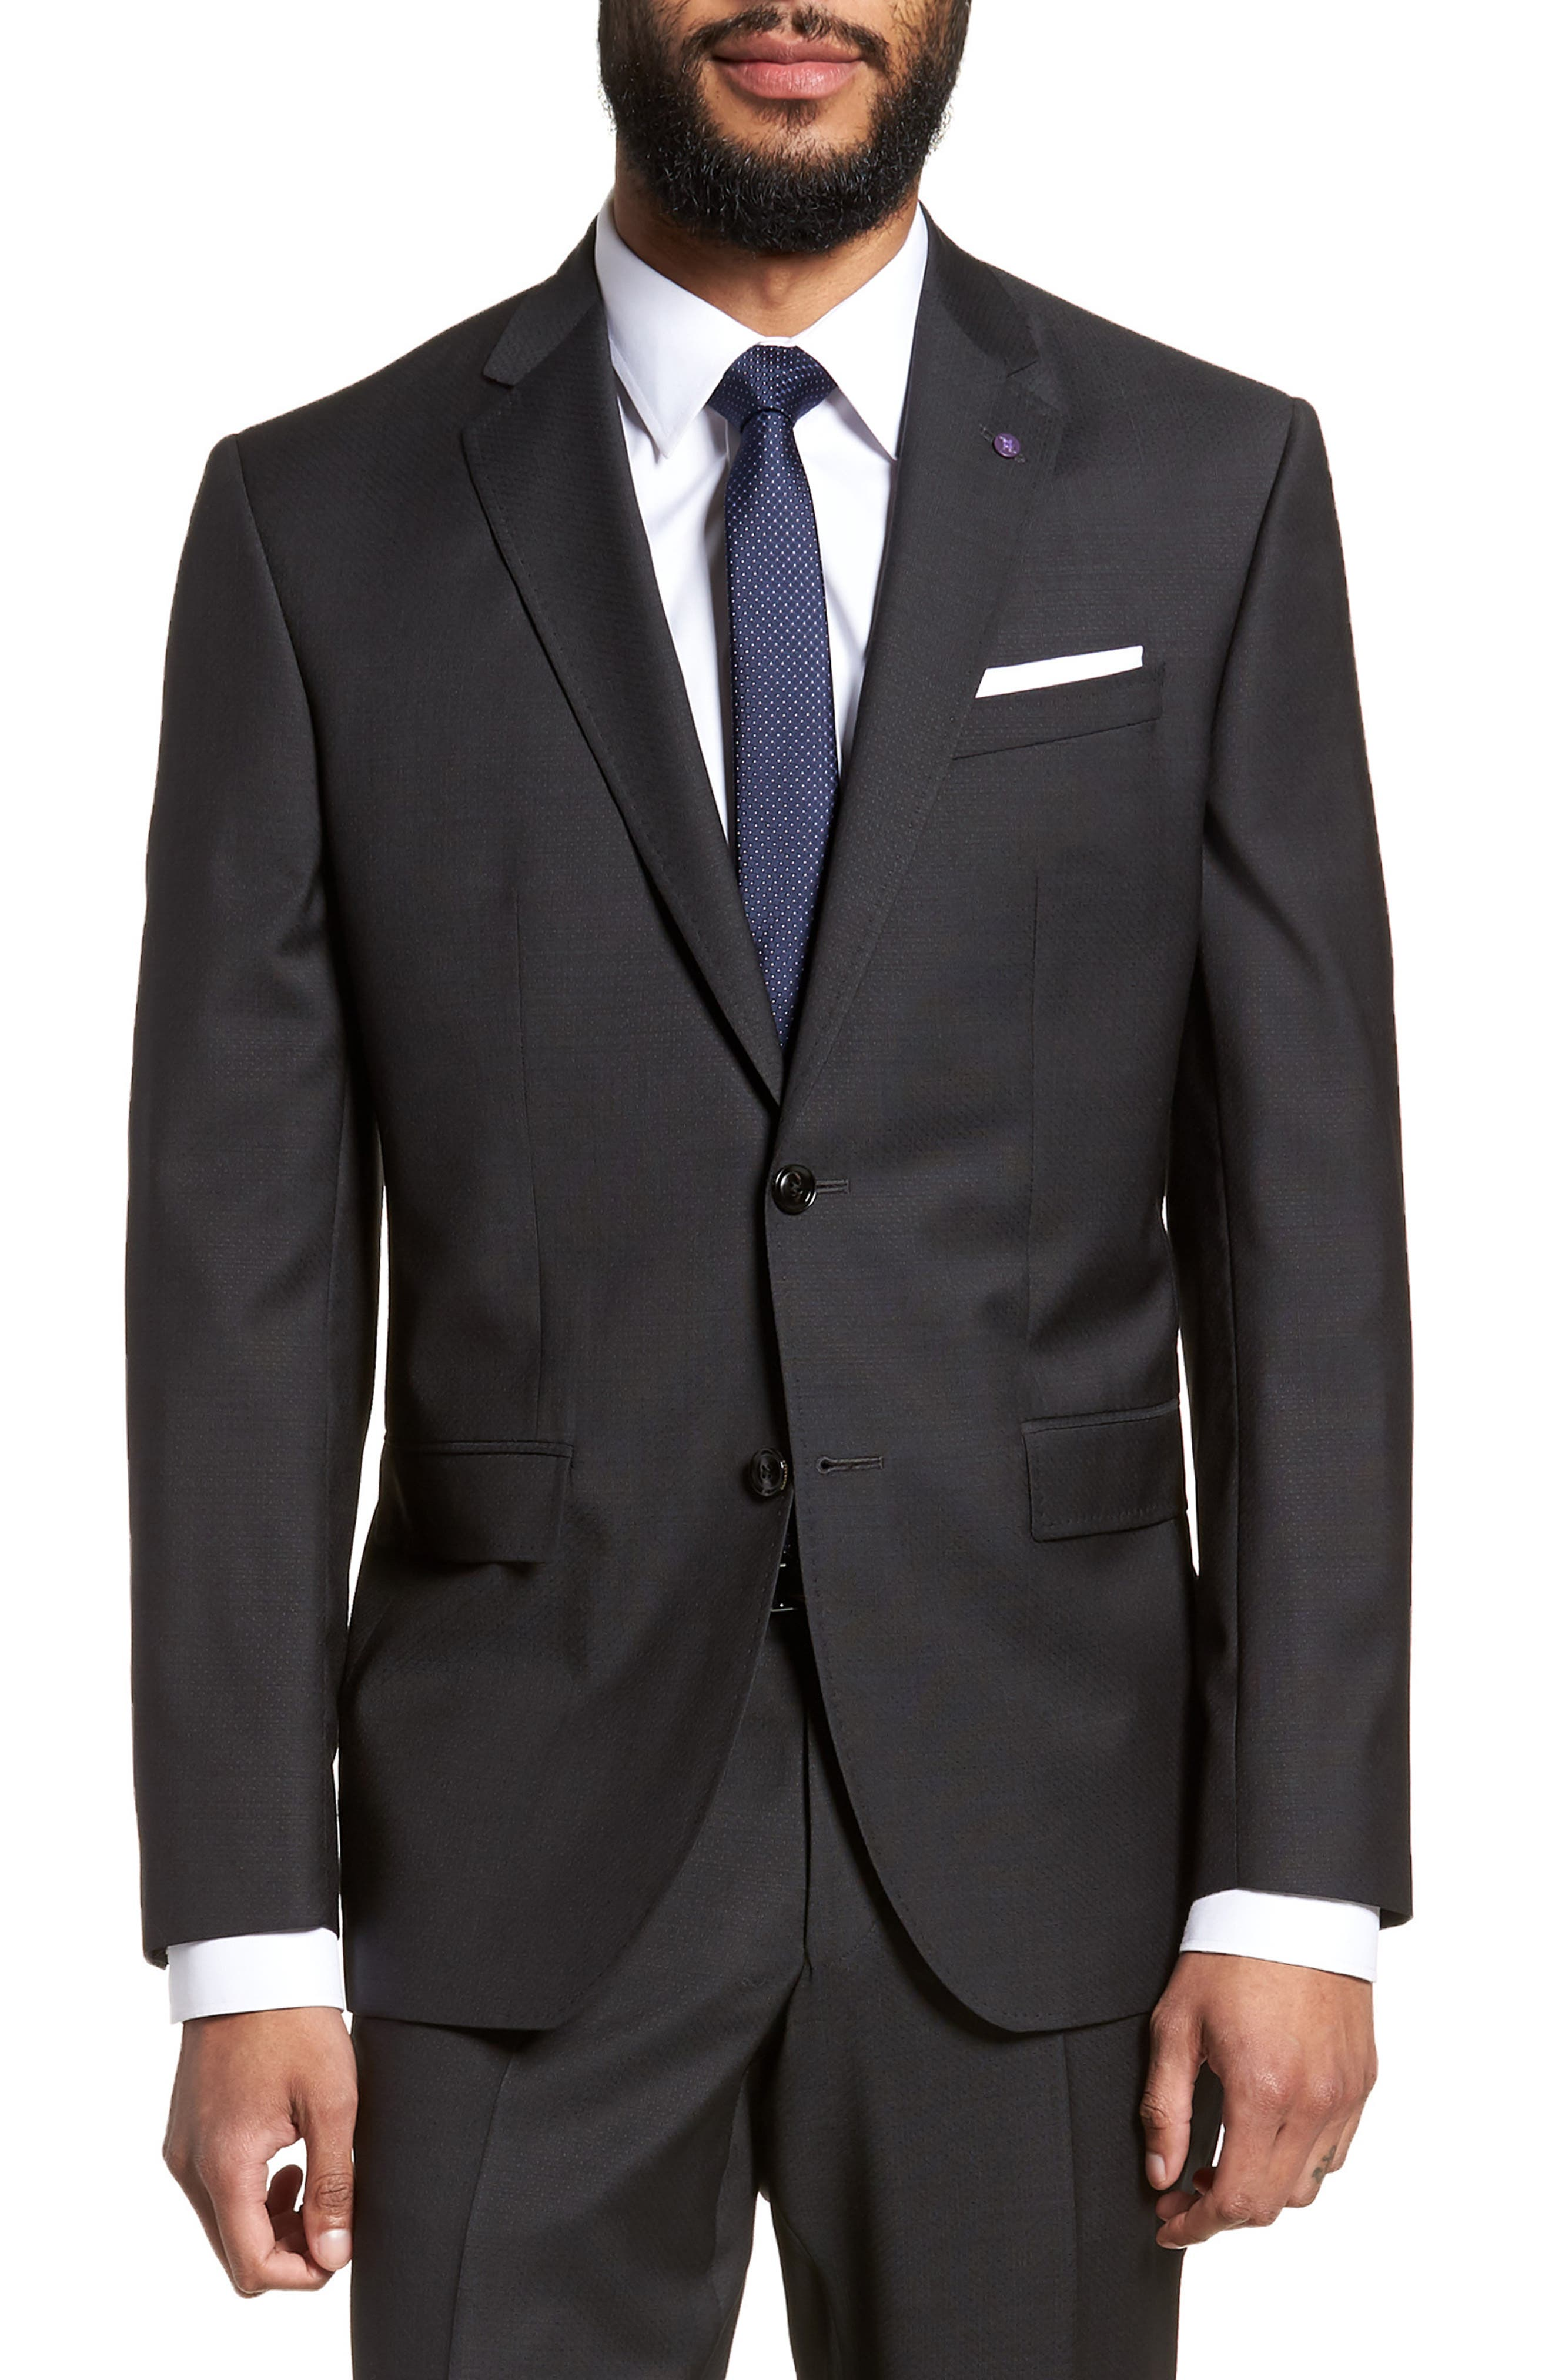 Jay Trim Fit Solid Wool Suit,                             Alternate thumbnail 5, color,                             001